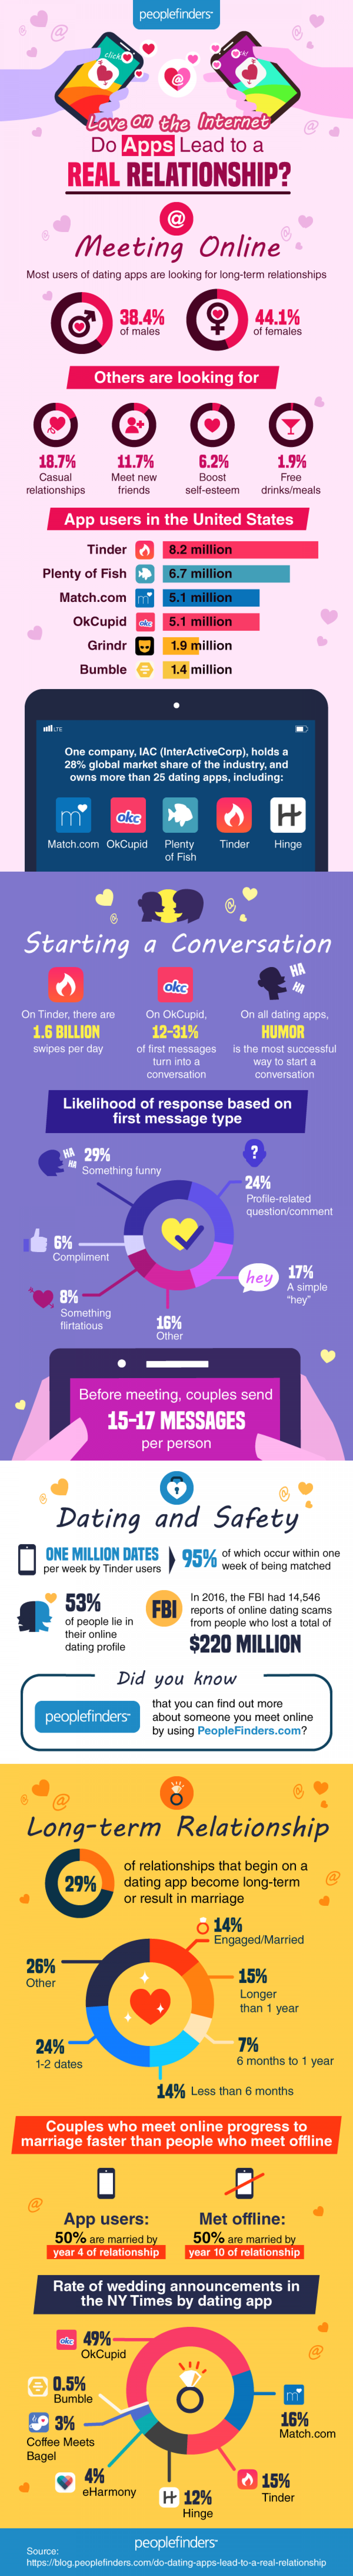 Love on the Internet: Do Apps Lead to a Real Relationship? Infographic